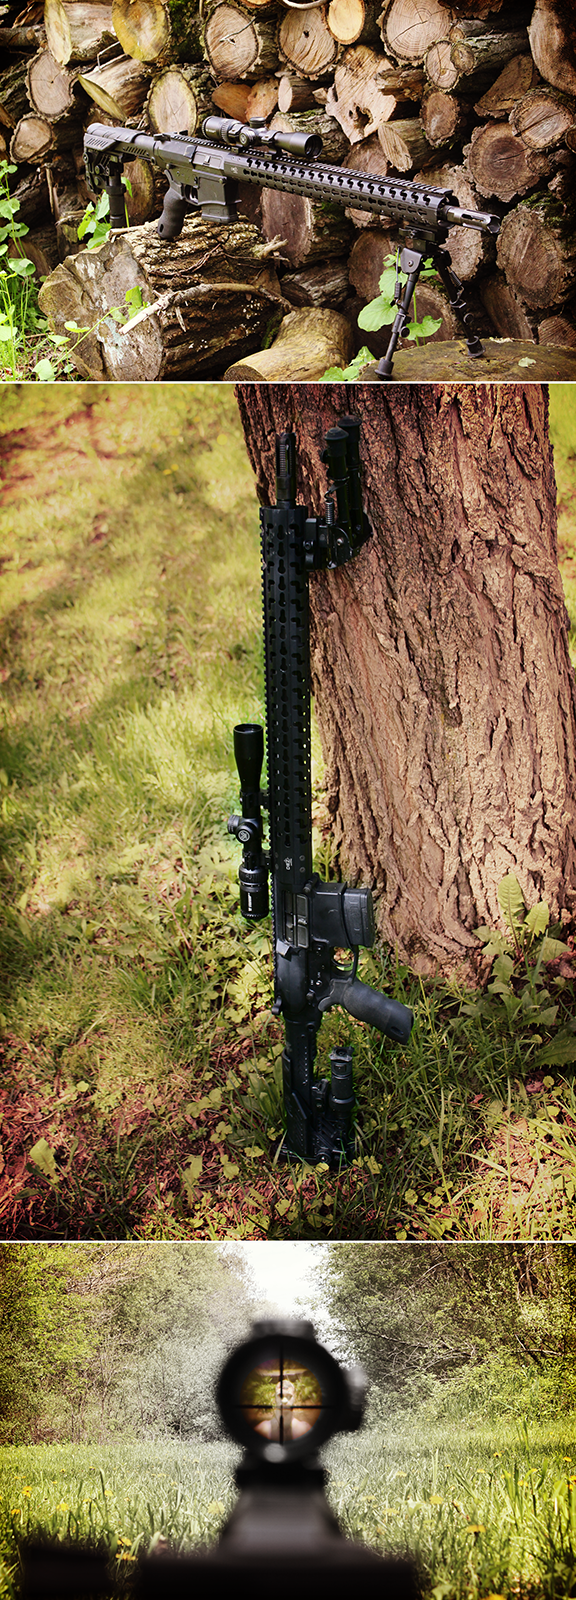 Vortex Scout Scope - We Like Shooting